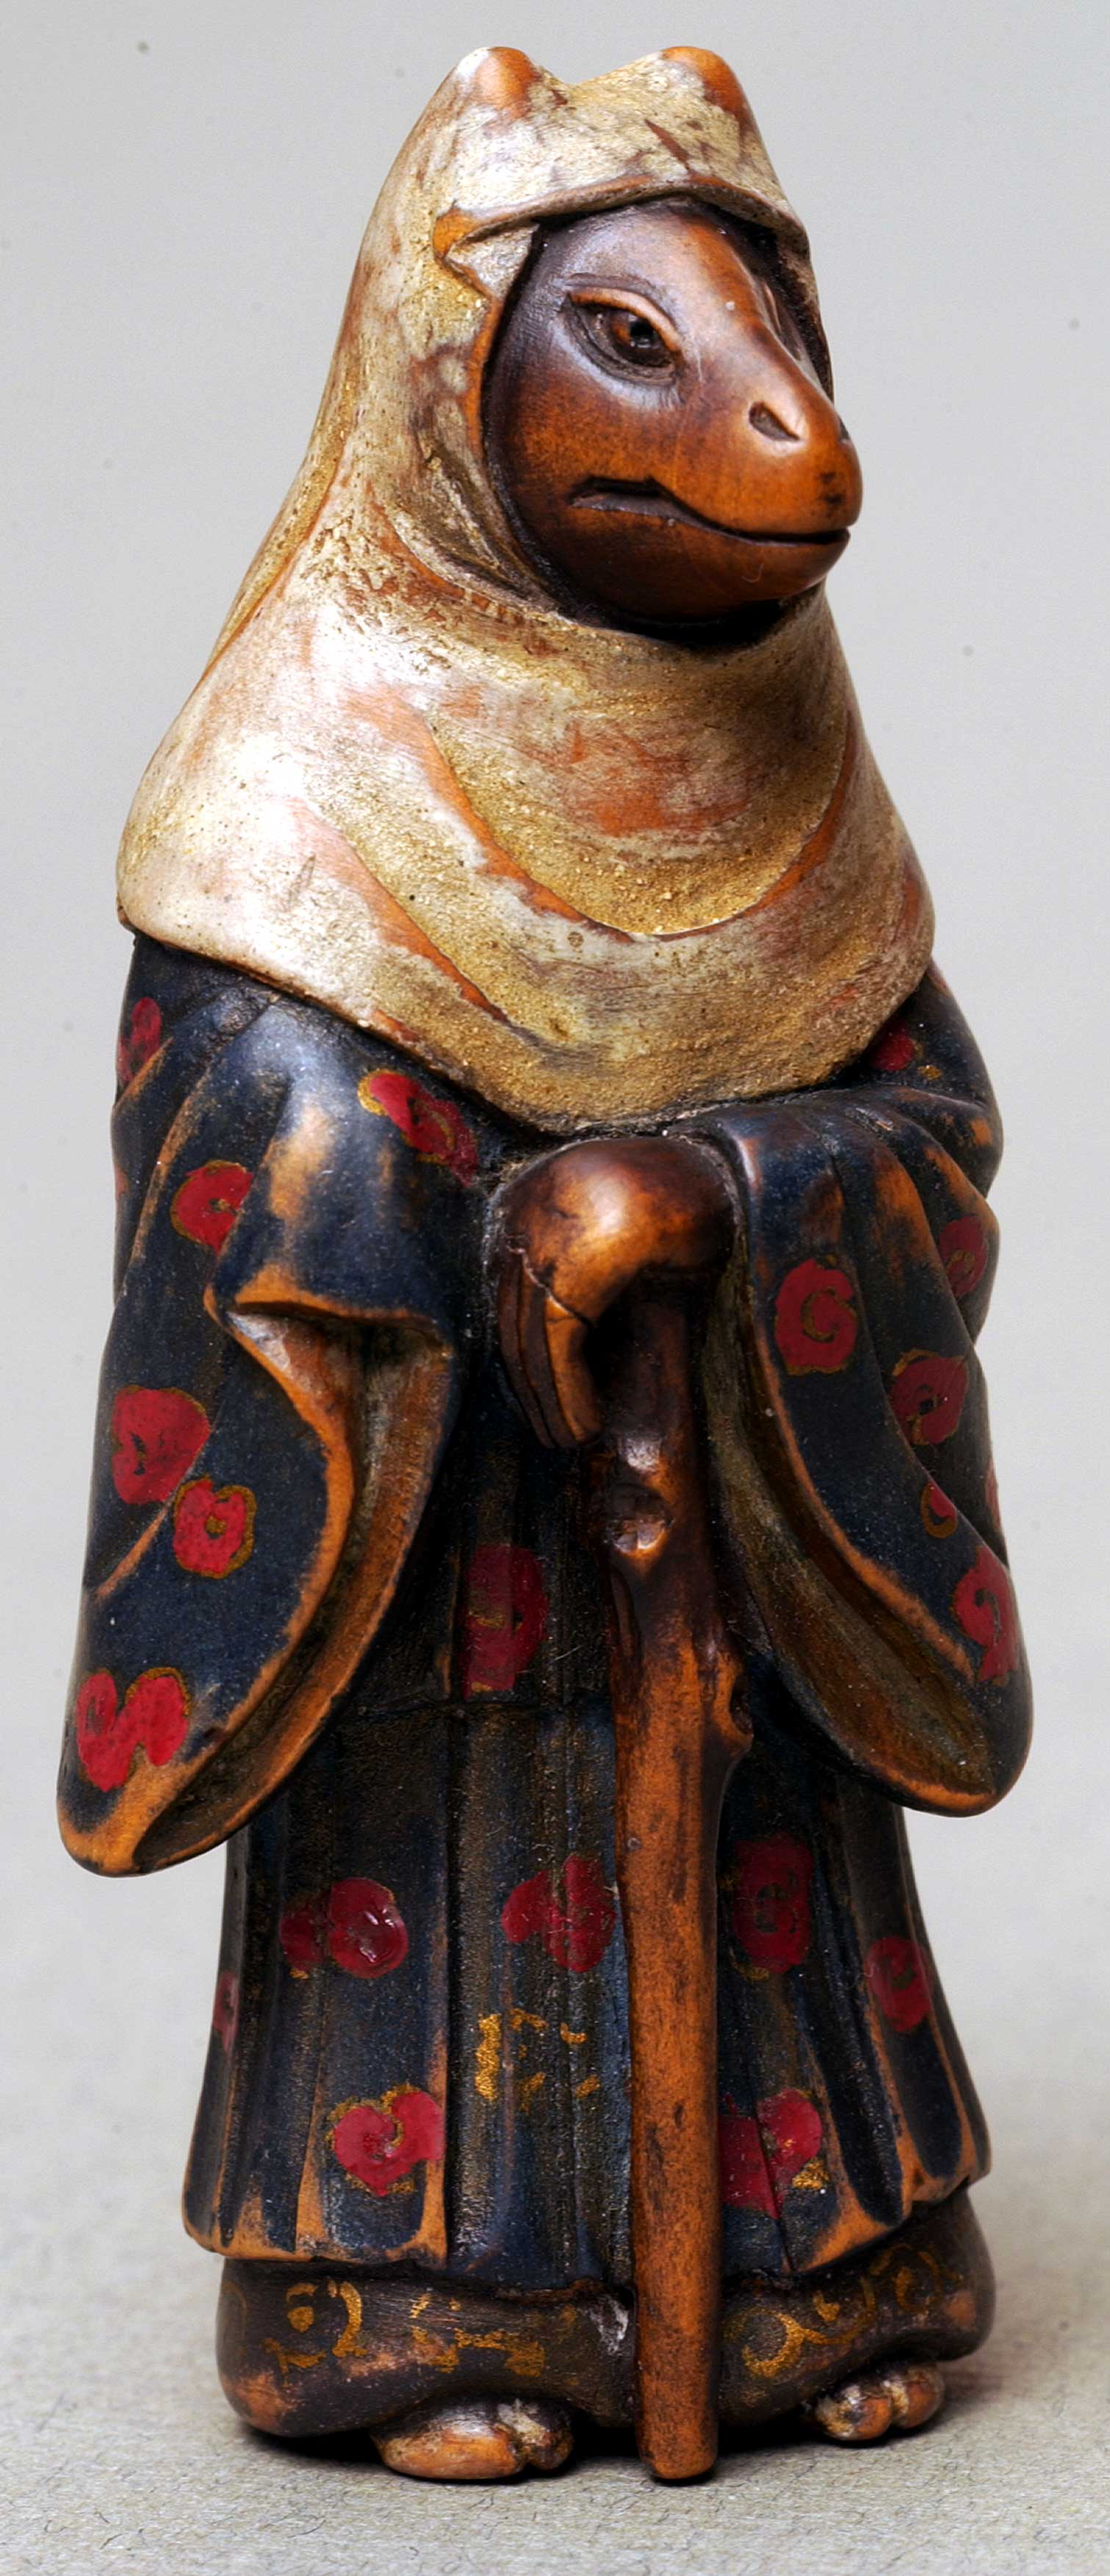 Netsuke depicting fox in dress and cloak